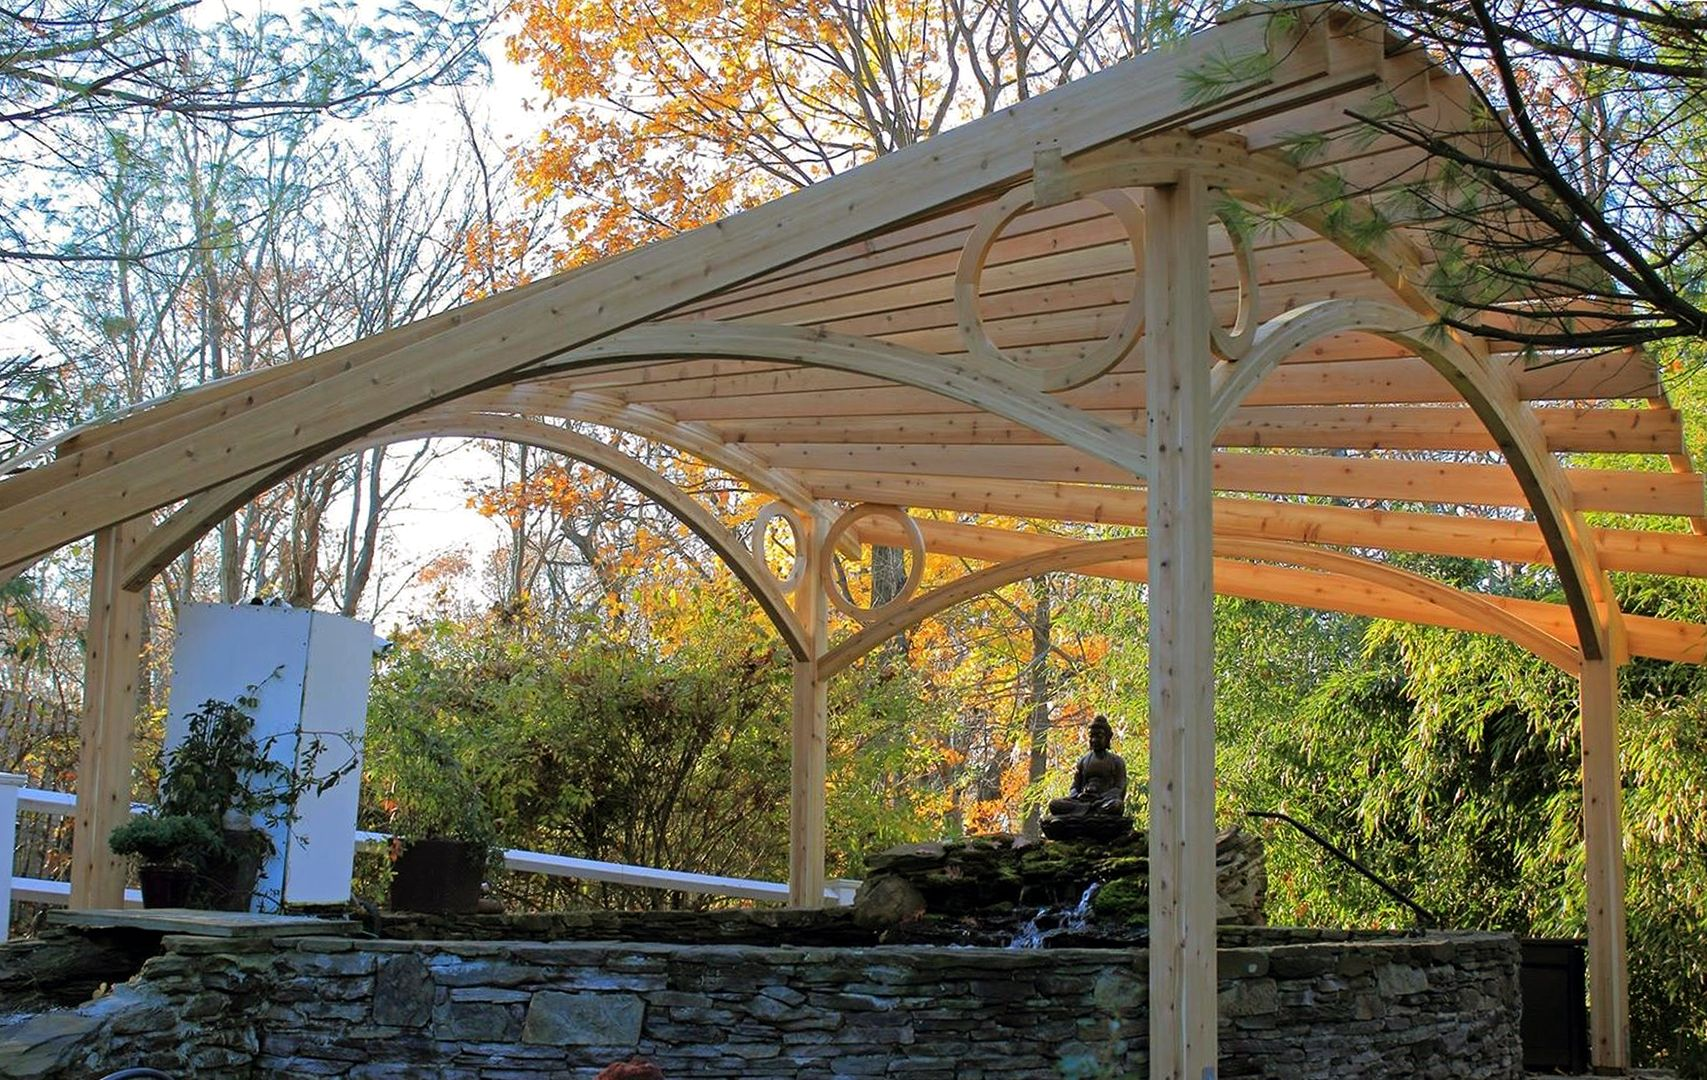 Pin by jean eisenstat on Places to Visit Pergola, Wooden